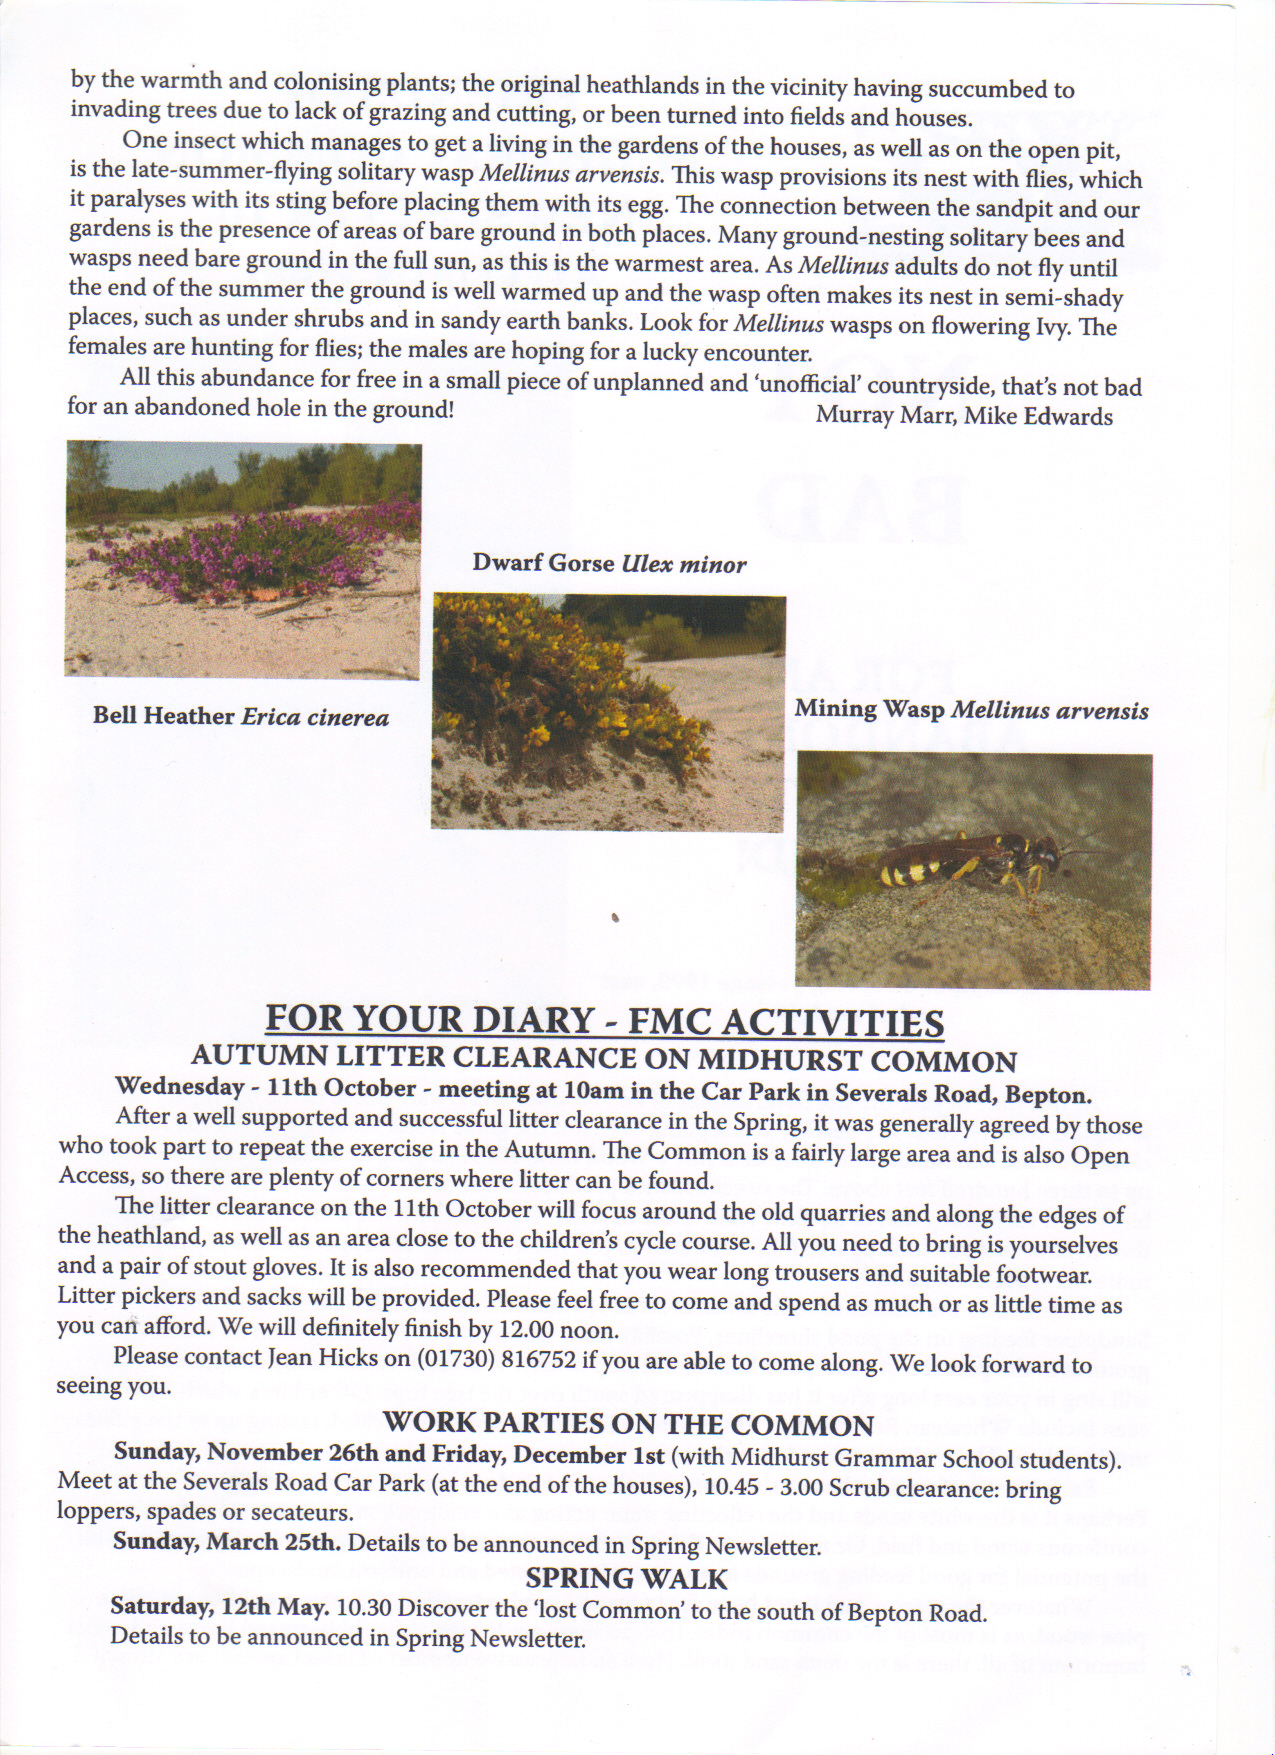 Newsletter no 10 part 2 of 2 Autumn 2006